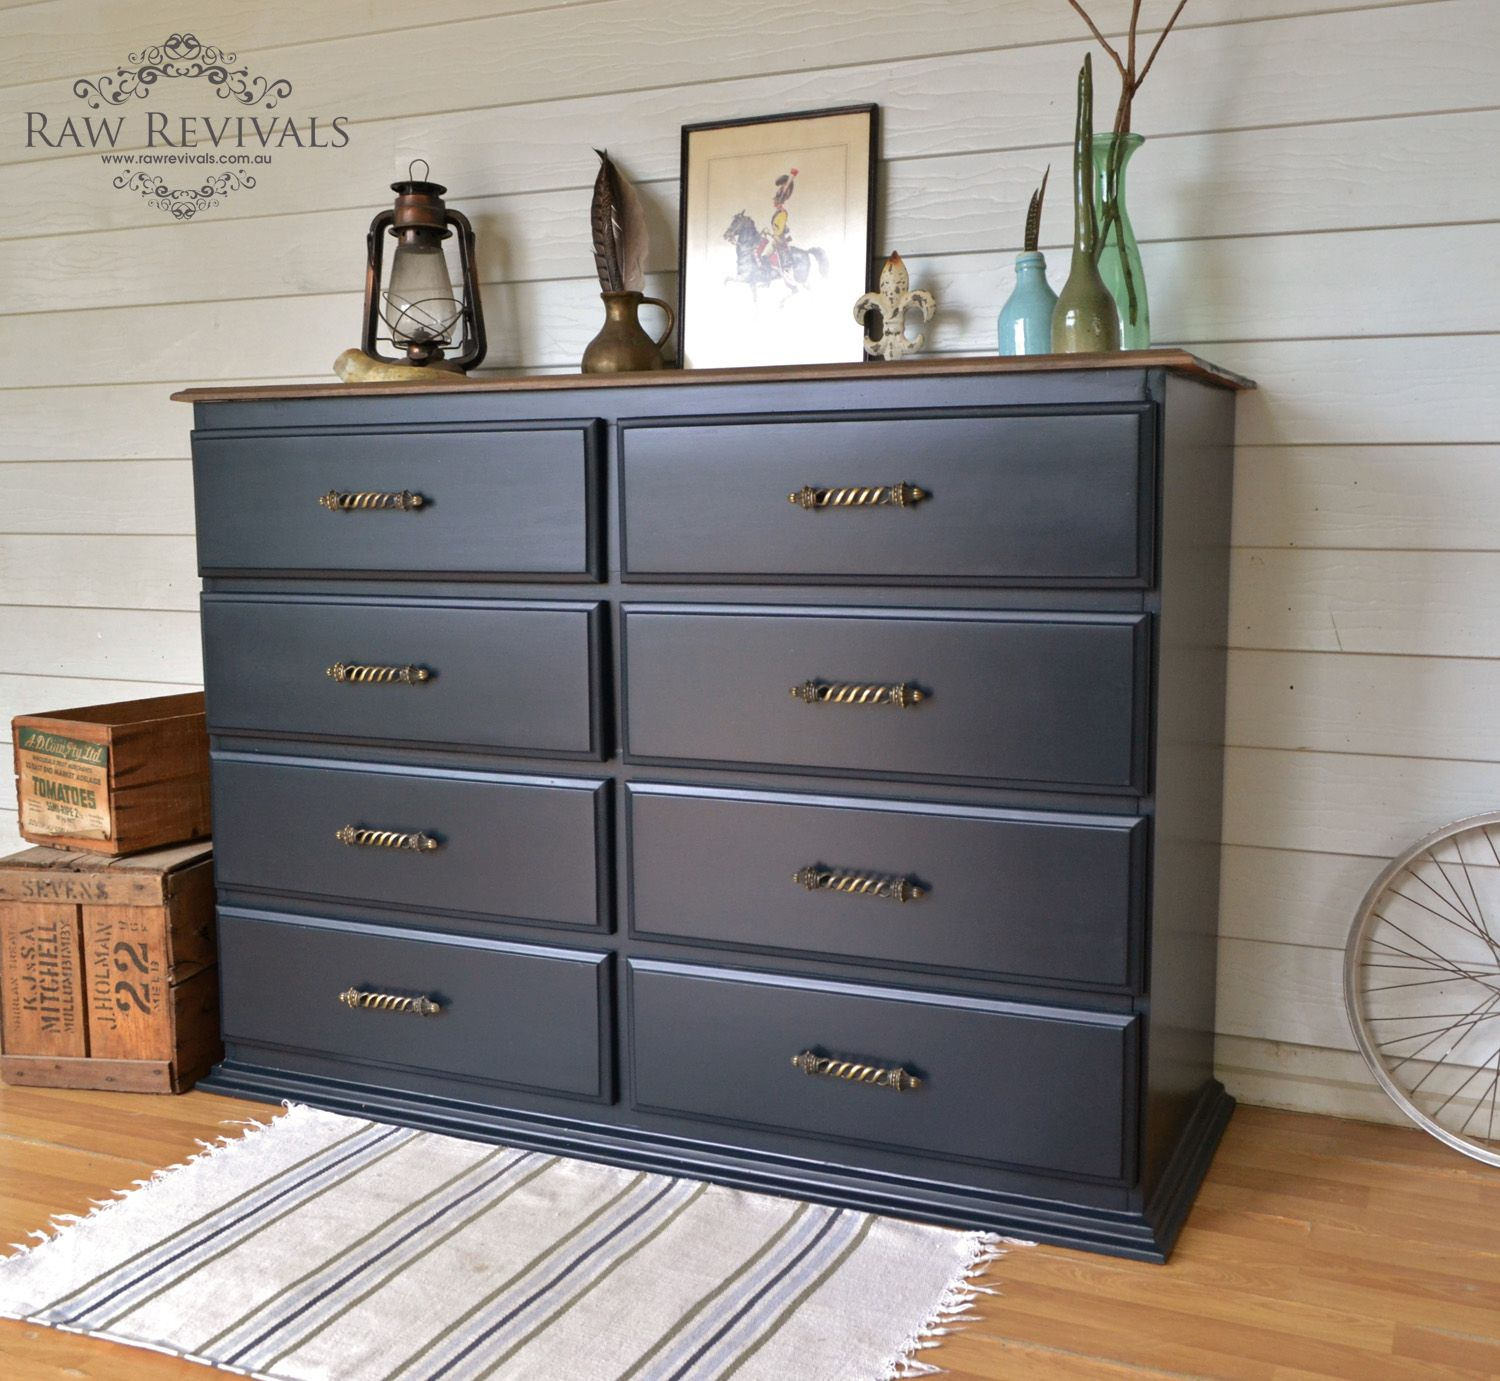 Large Chest Of Drawers Painted In Midnight Blue And Brass Handles Mesmerizing Bedroom Chest Of Drawers Design Decoration